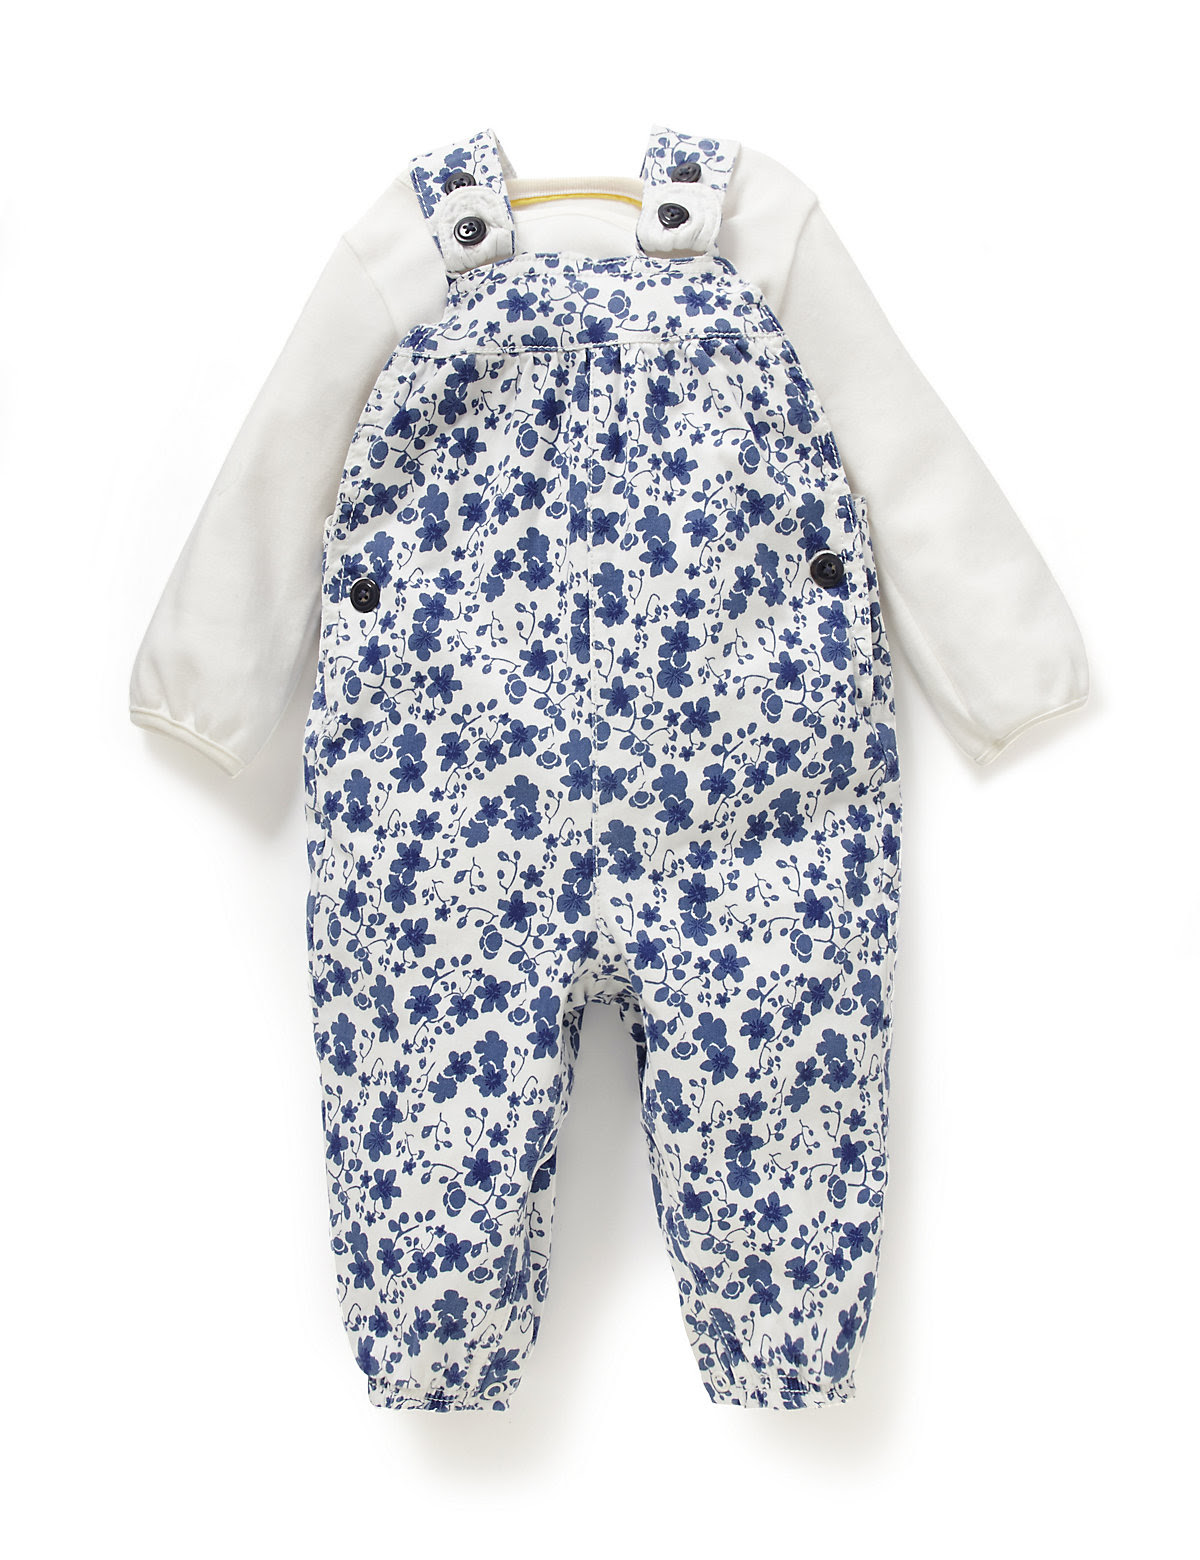 2 Piece Cotton Rich Floral Dungaree & Bodysuit Outfit